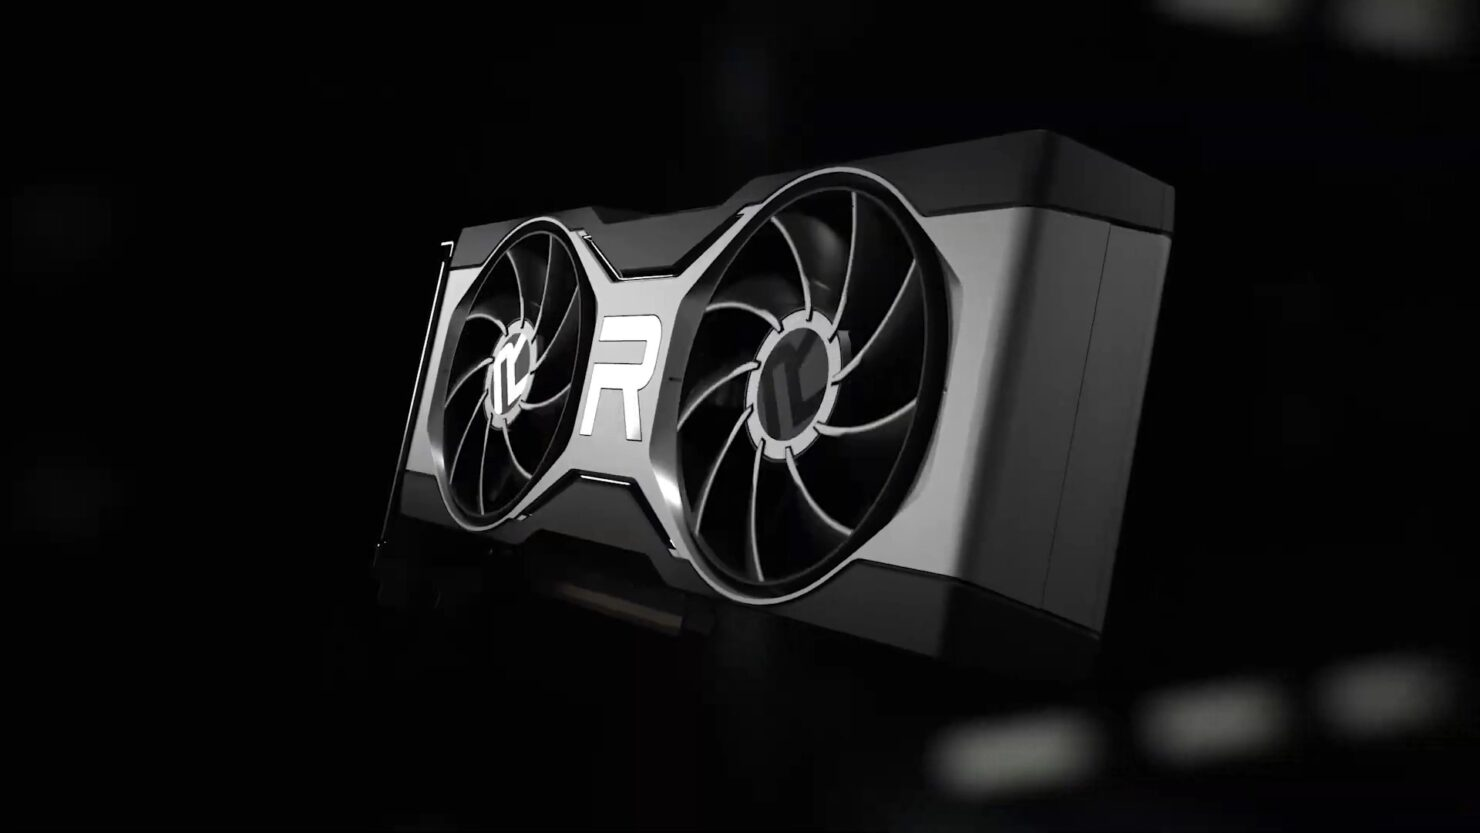 amd-navi-23-gpu-powered-radeon-rx-6600-xt-to-features-2048-&-rx-6600-features-1792-cores,-8-gb-gddr6-memory-for-both-graphics-cards